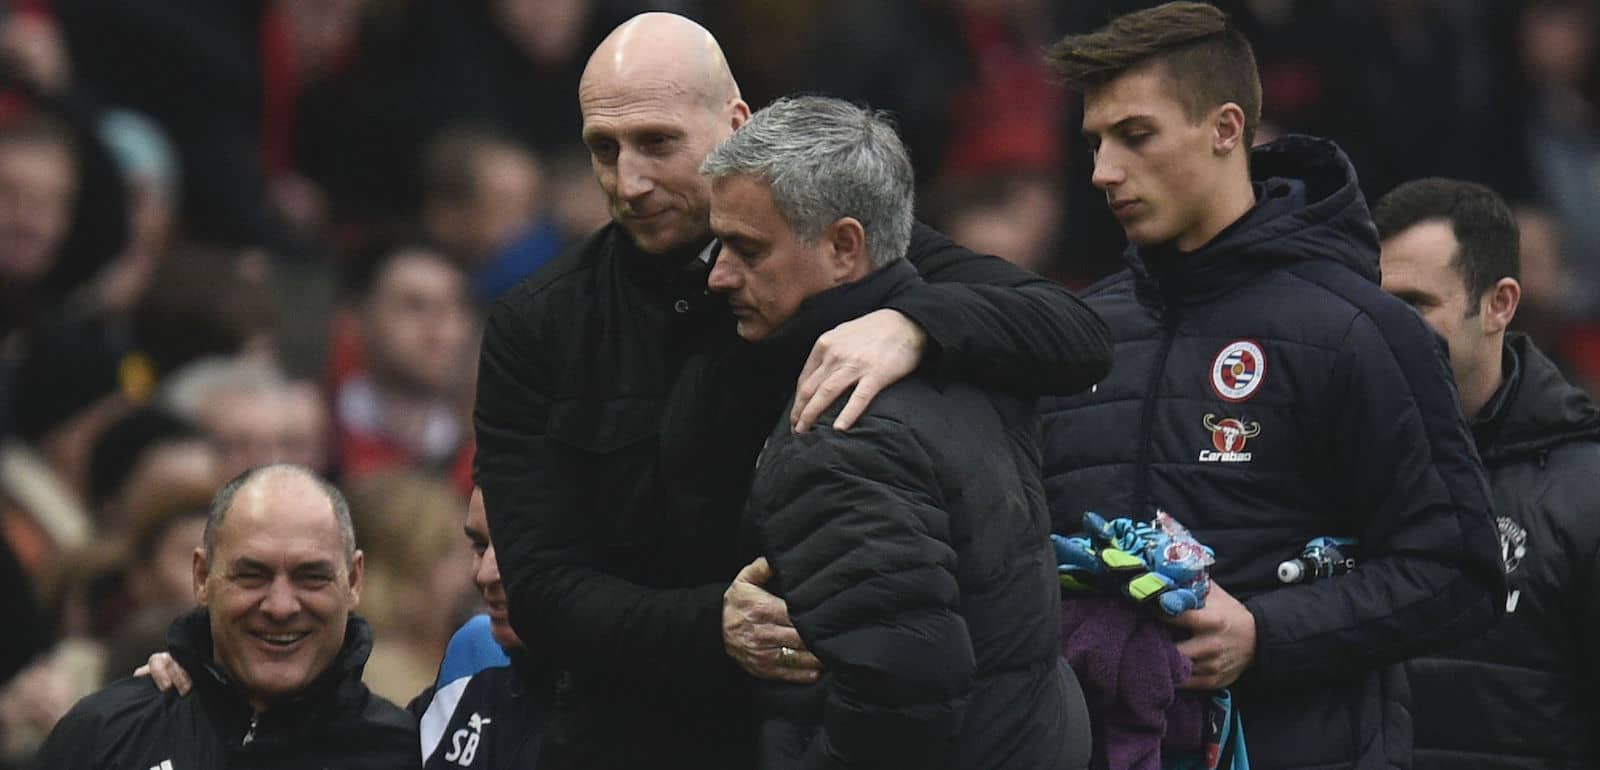 Jaap Stam urges Manchester United to sign this young star